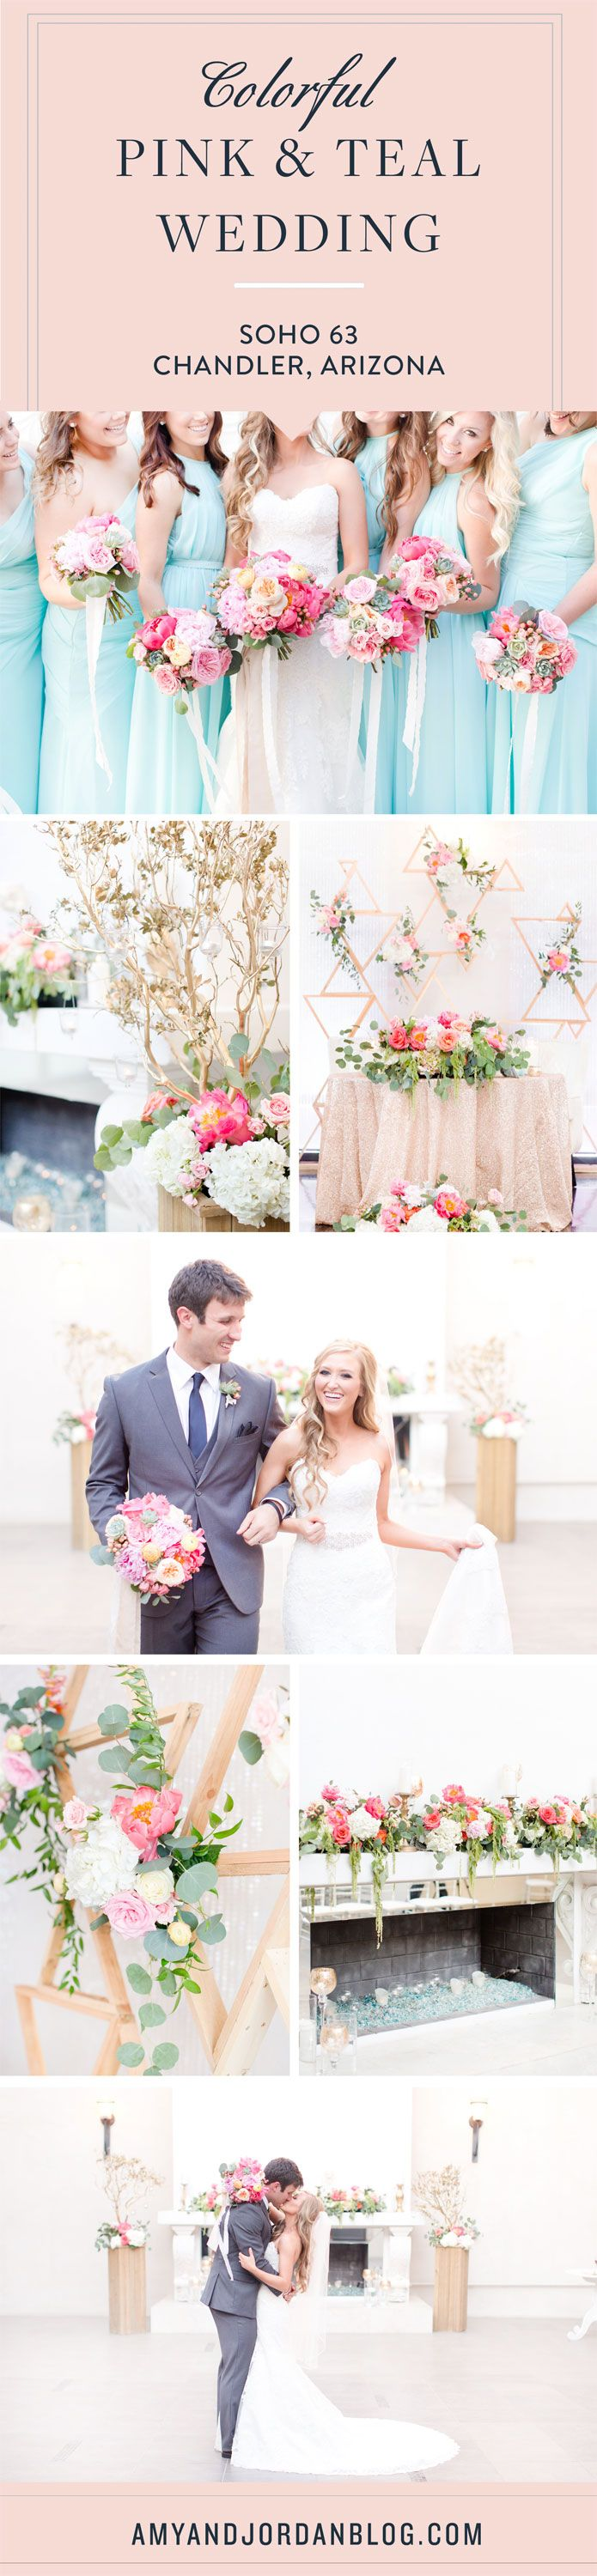 Colorful teal and blush Soho 63 wedding, in Chandler, Arizona. Gorgeous blush florals with pops of pink and lovely succulents were paired perfectly with long teal bridesmaids dresses.  And the guys wore grey suits which completed this perfect pallet.